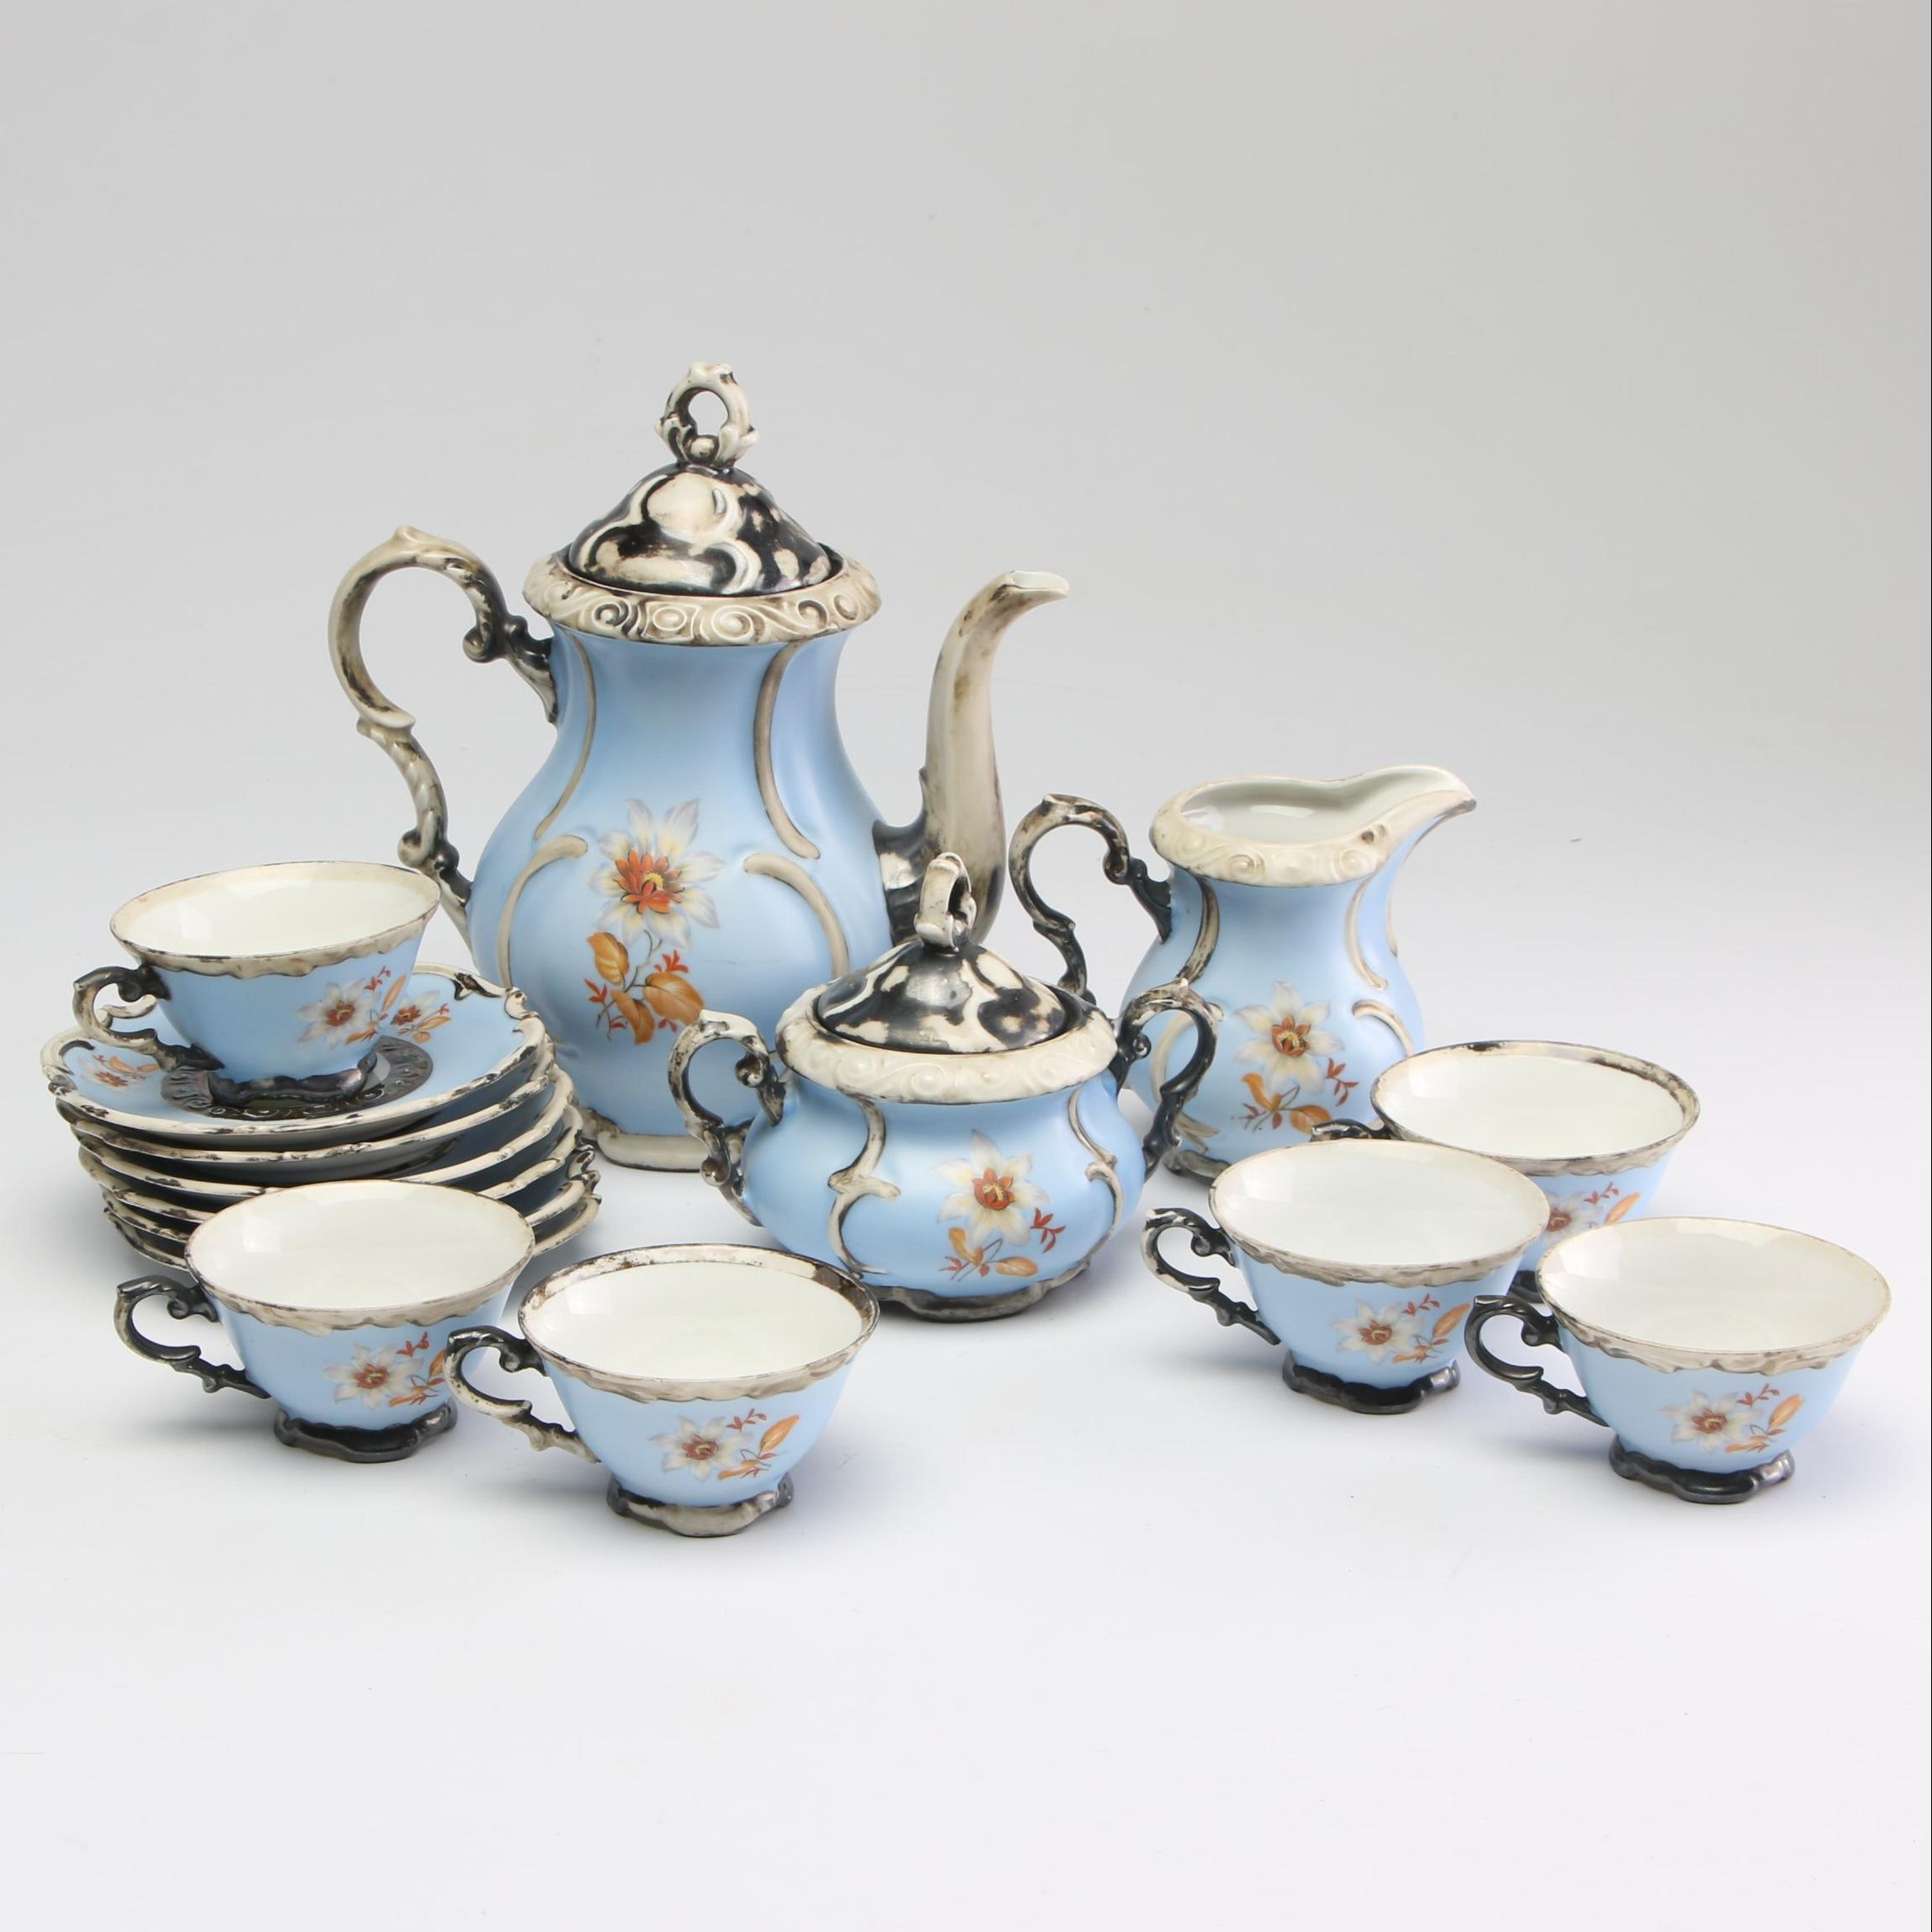 Dekor Feinsilber Bavaria Porcelain Tea Service, Early to Mid-20th Century